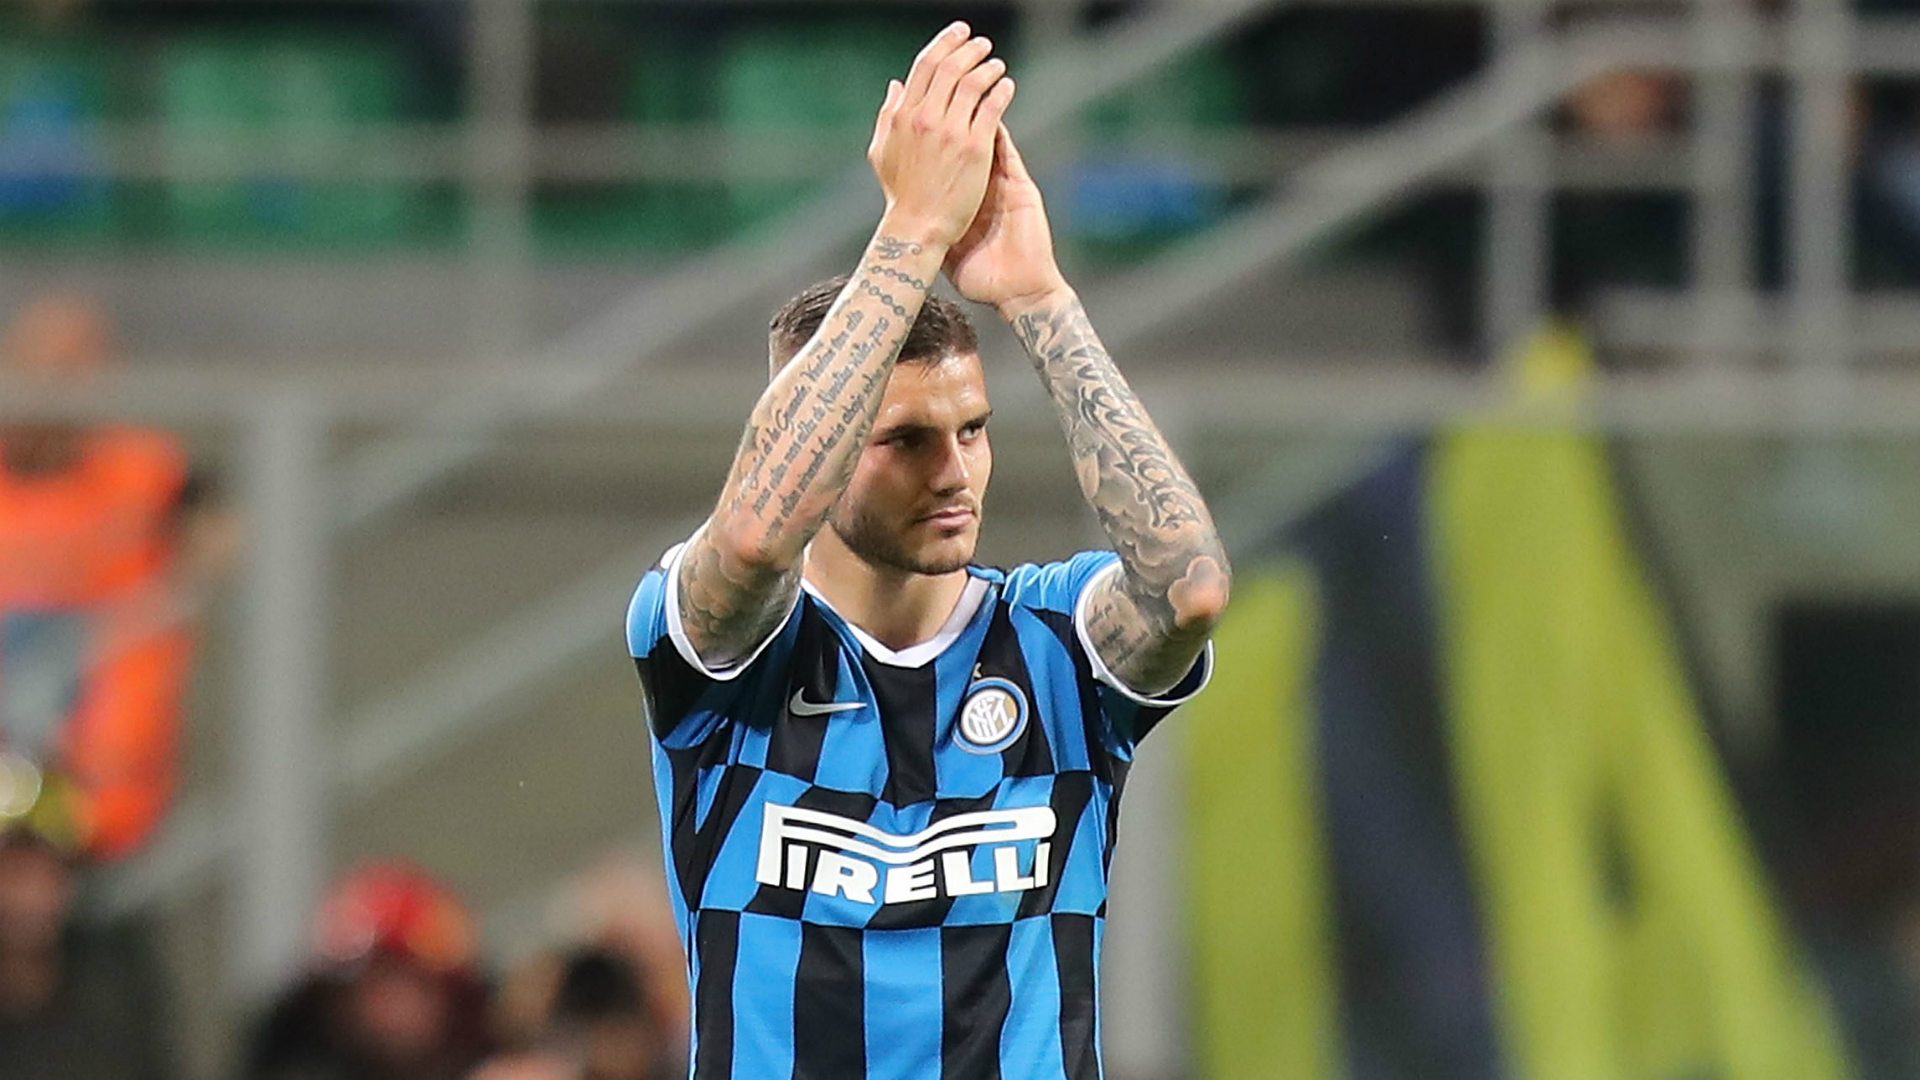 De Vrij and Inter ignoring Icardi issue as Conte tenure opens with win